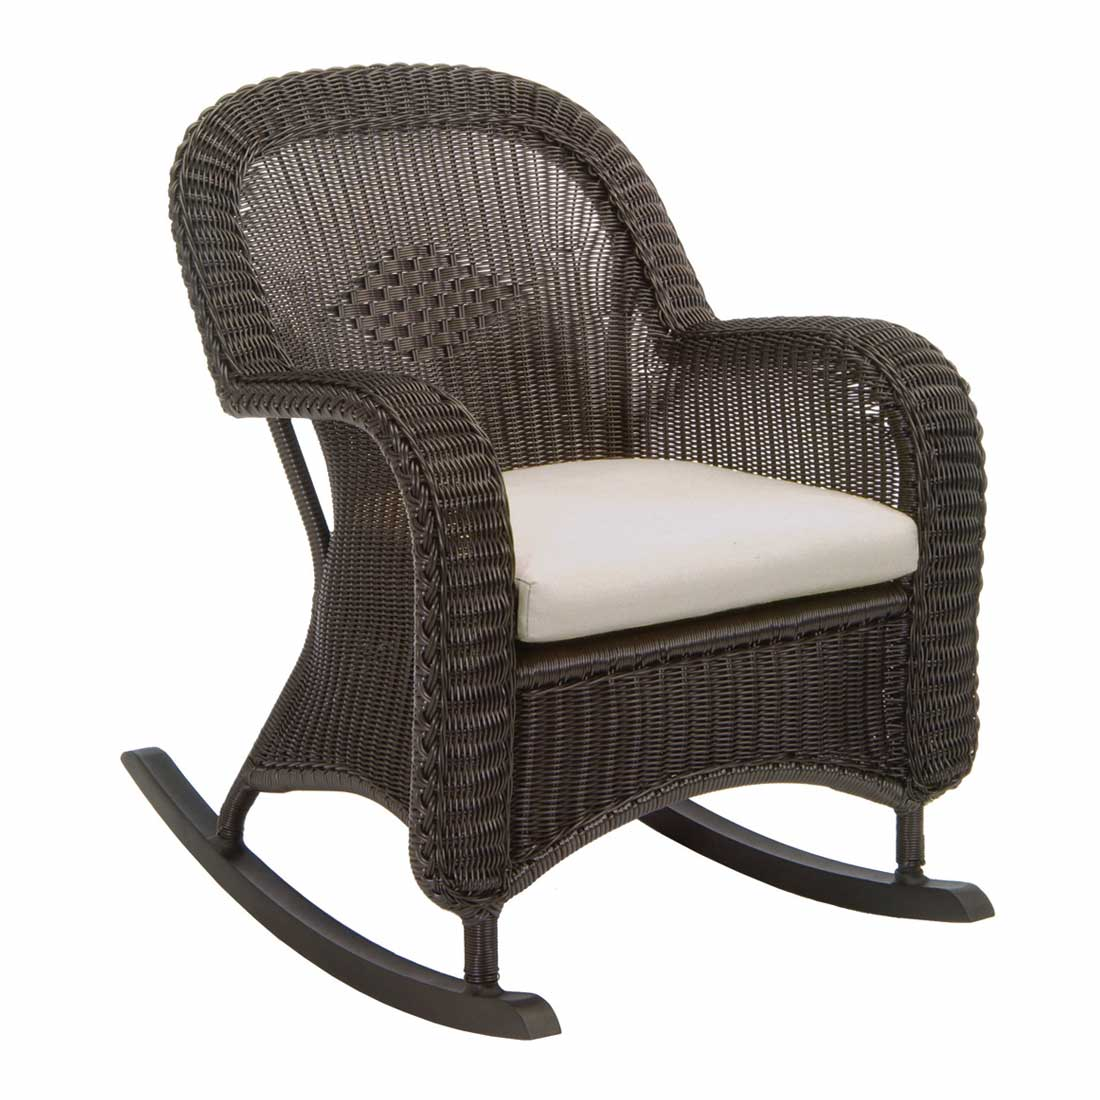 Wicker Patio Chair Classic Outdoor Wicker Rocking Chair